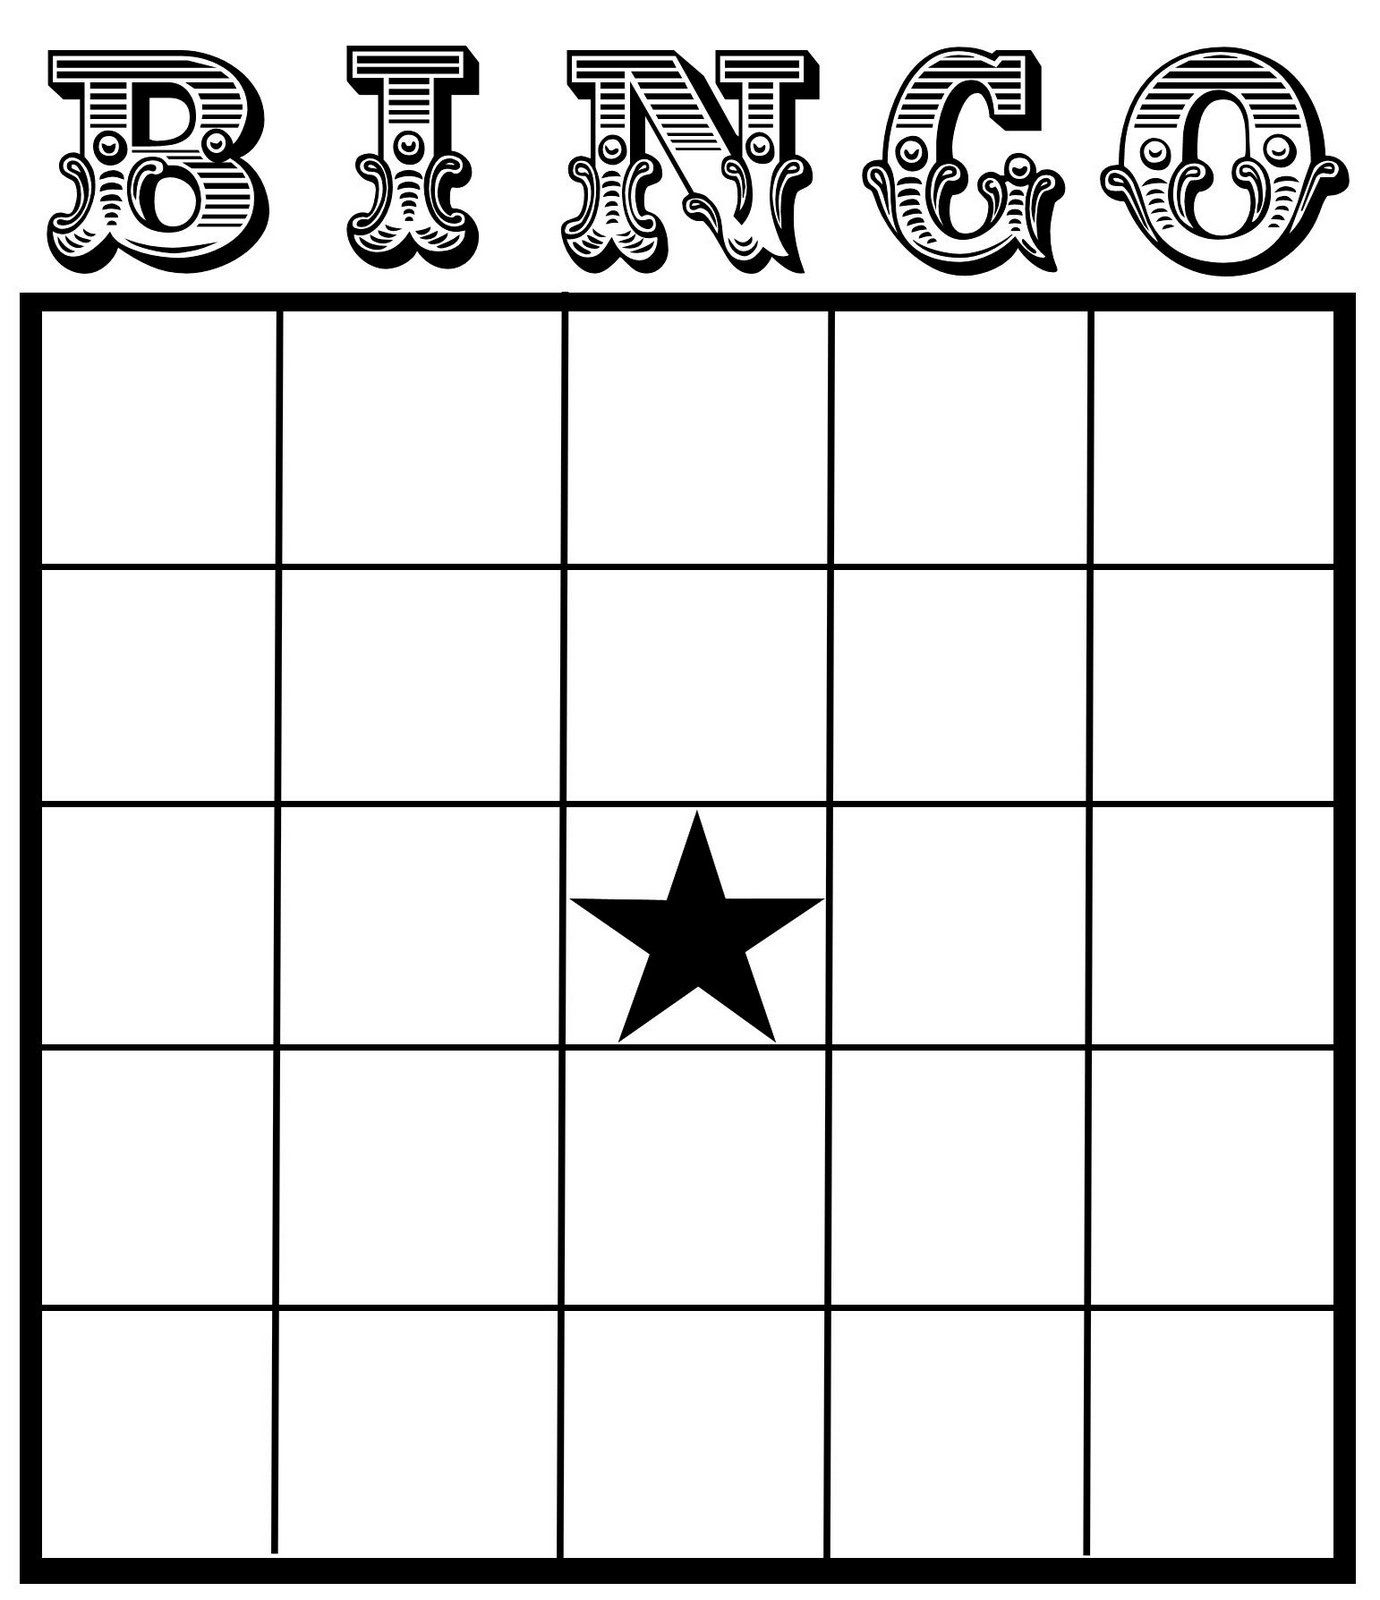 worksheet Bingo Worksheet printable bingo cards 2017 calendar 1000 ideas about on pinterest cards